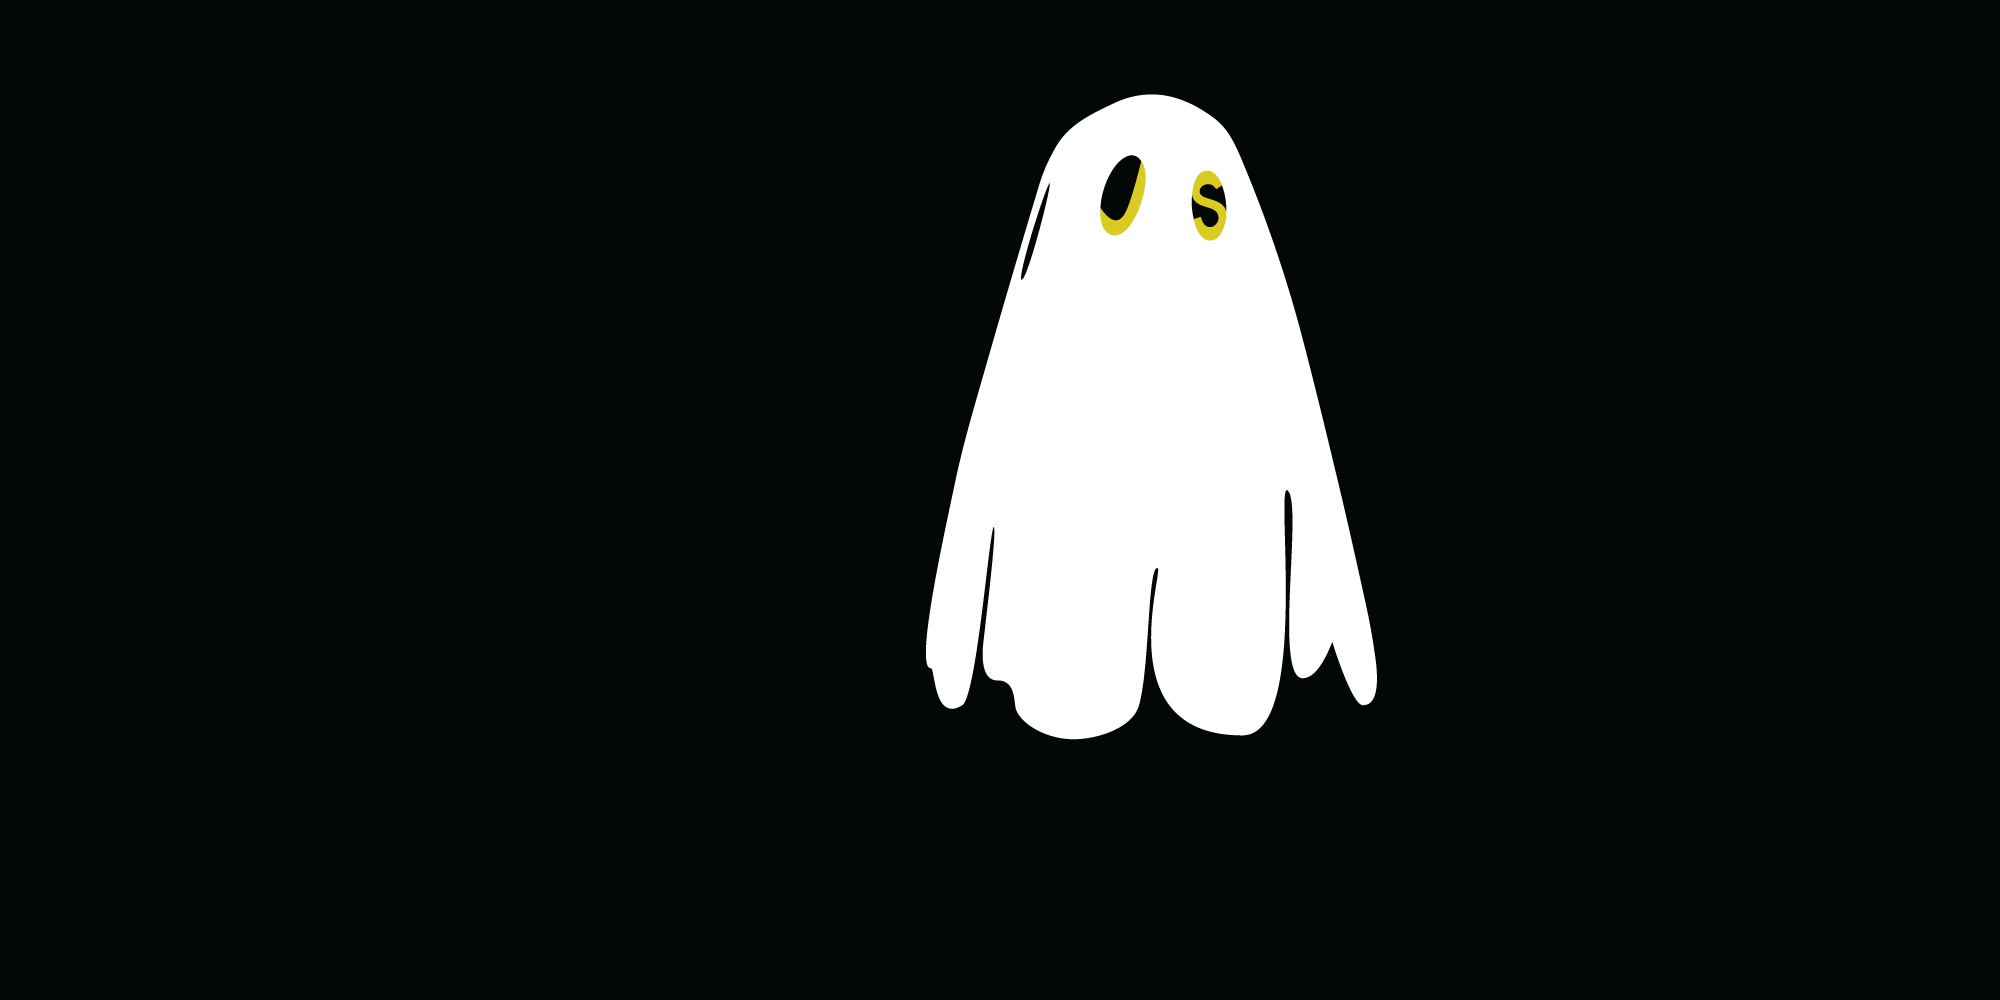 an Illustration of a ghost with the letters J and S for eyes